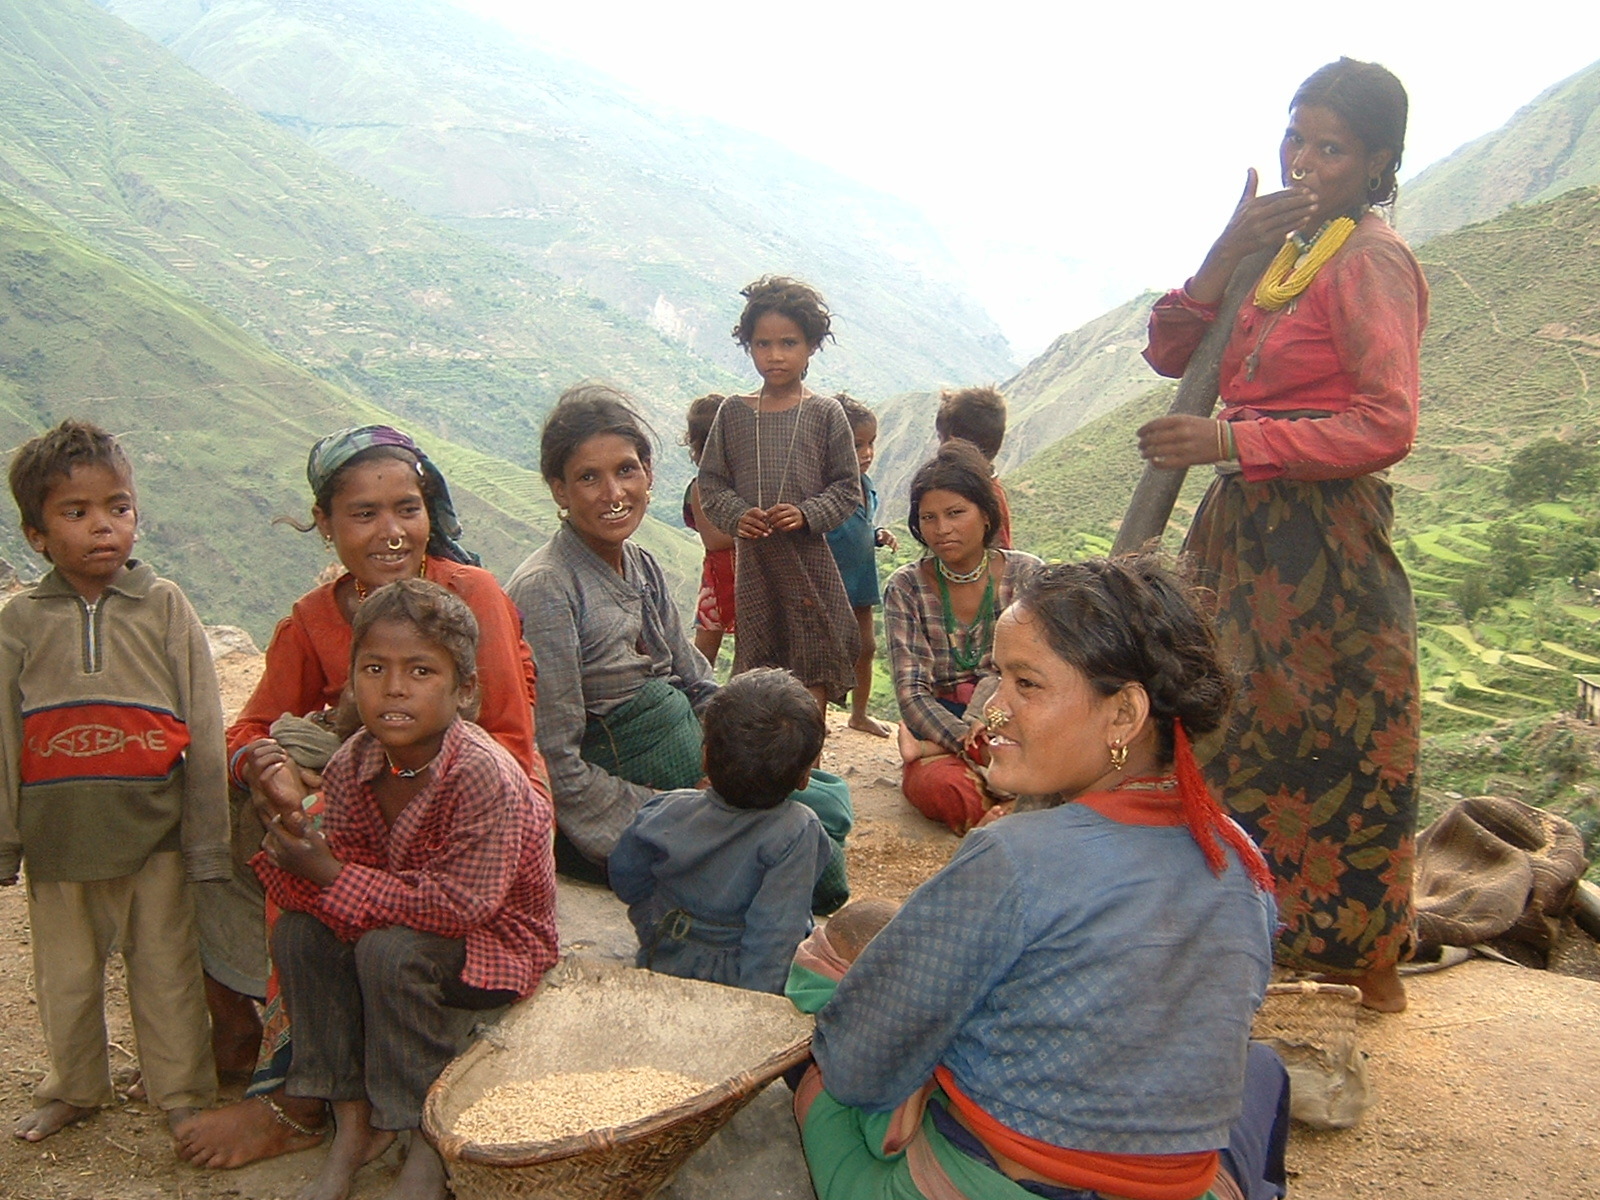 Food for thought for Nepal's nutrition planners